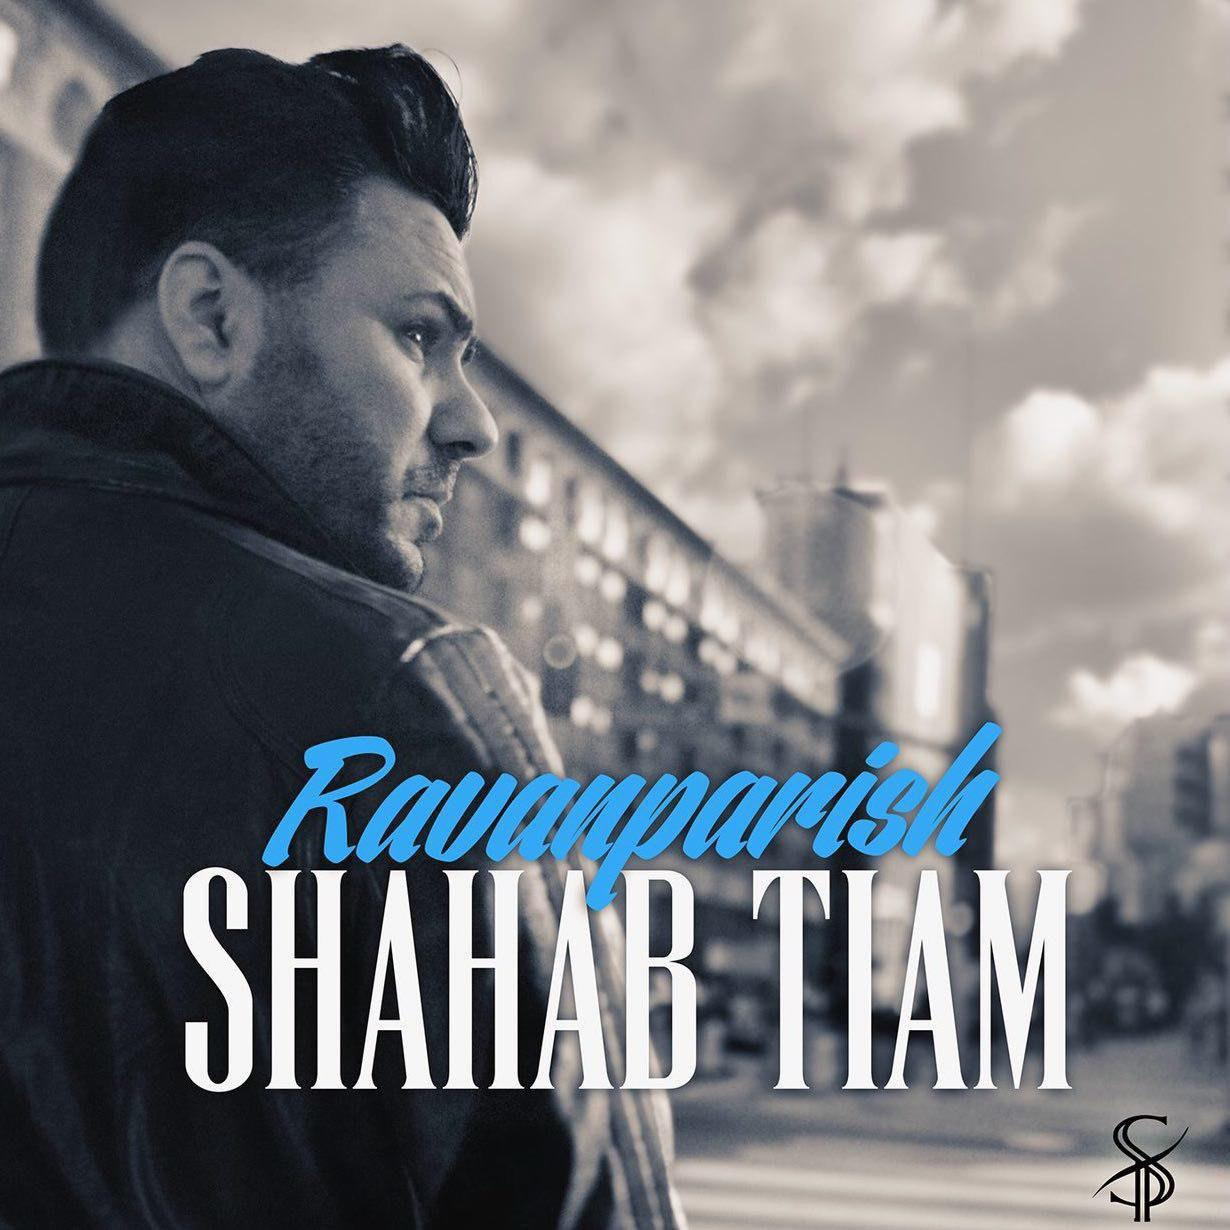 Download New Song, Download New Song By Shahab Tiam Called Ravanparish, Download New Song Shahab Tiam Ravanparish, avinmusic, Ravanparish, Ravanparish by Shahab Tiam, Ravanparish Download New Song By Shahab Tiam, Ravanparish Download New Song Shahab Tiam, Shahab Tiam, Shahab Tiam Ravanparish, آهنگ, آهنگ جدید, دانلود, دانلود آهنگ, دانلود آهنگ Shahab Tiam, دانلود آهنگ جدید, دانلود آهنگ جدید Shahab Tiam, دانلود آهنگ جدید Shahab Tiam به نام Ravanparish, دانلود آهنگ جدید شهاب تیام, دانلود آهنگ جدید شهاب تیام به نام روان پریش, دانلود آهنگ جدید شهاب تیام روان پریش, دانلود آهنگ شهاب تیام به نام روان پریش, دانلود آهنگ شهاب تیام روان پریش, روان پریش, روان پریش دانلود آهنگ شهاب تیام, شهاب تیام, آوین موزیک, کد پیشواز آهنگ های شهاب تیام